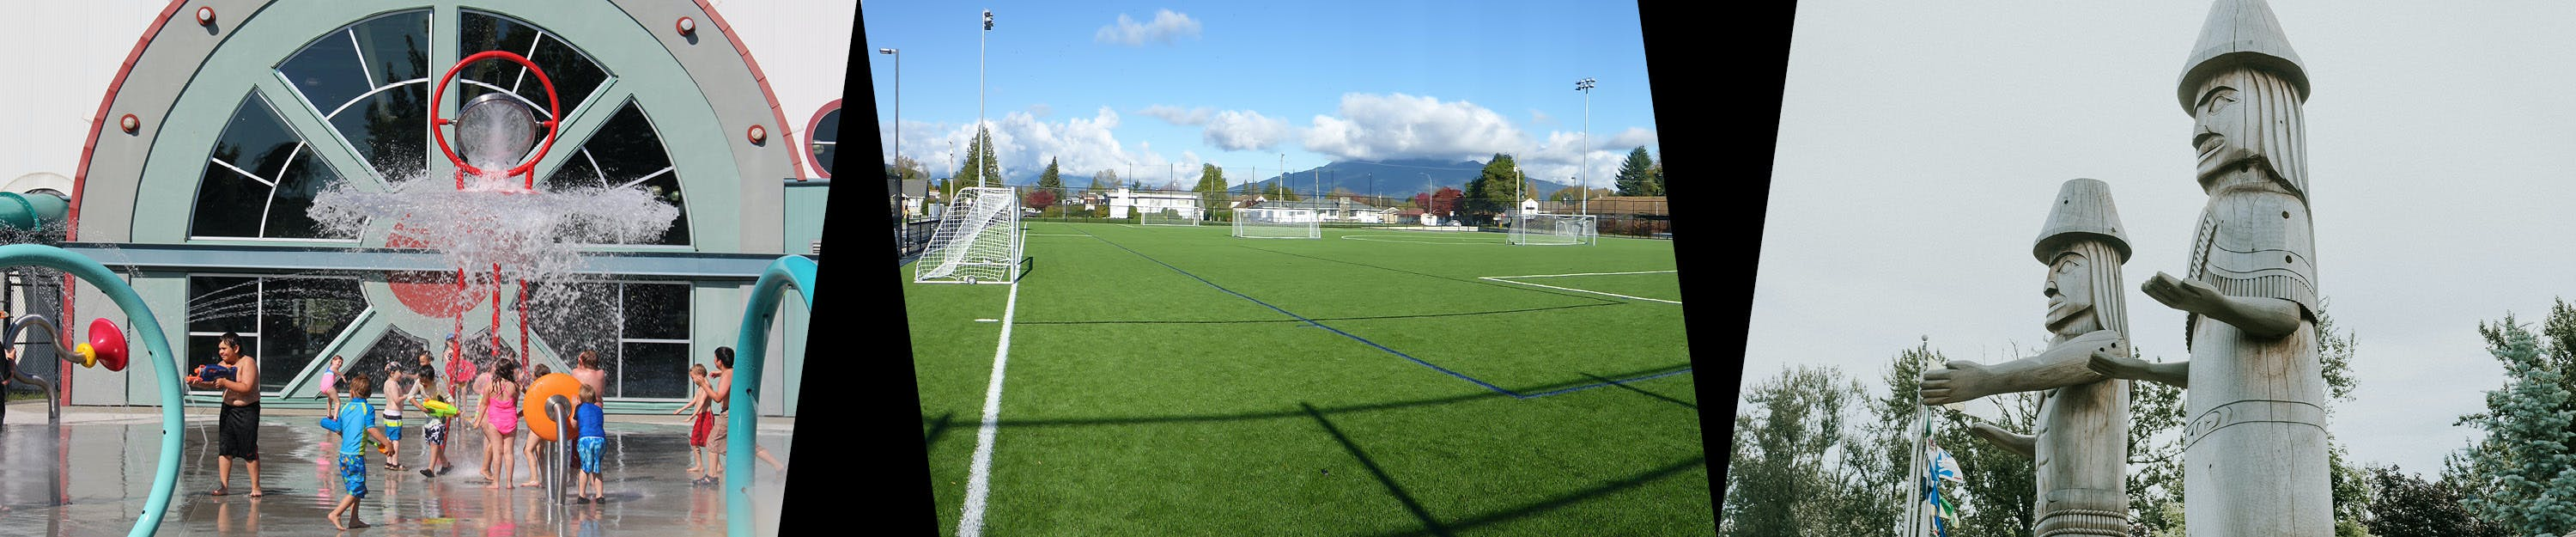 Kids playing at a spray park, an empty soccer field, Sto:lo welcome figure carvings